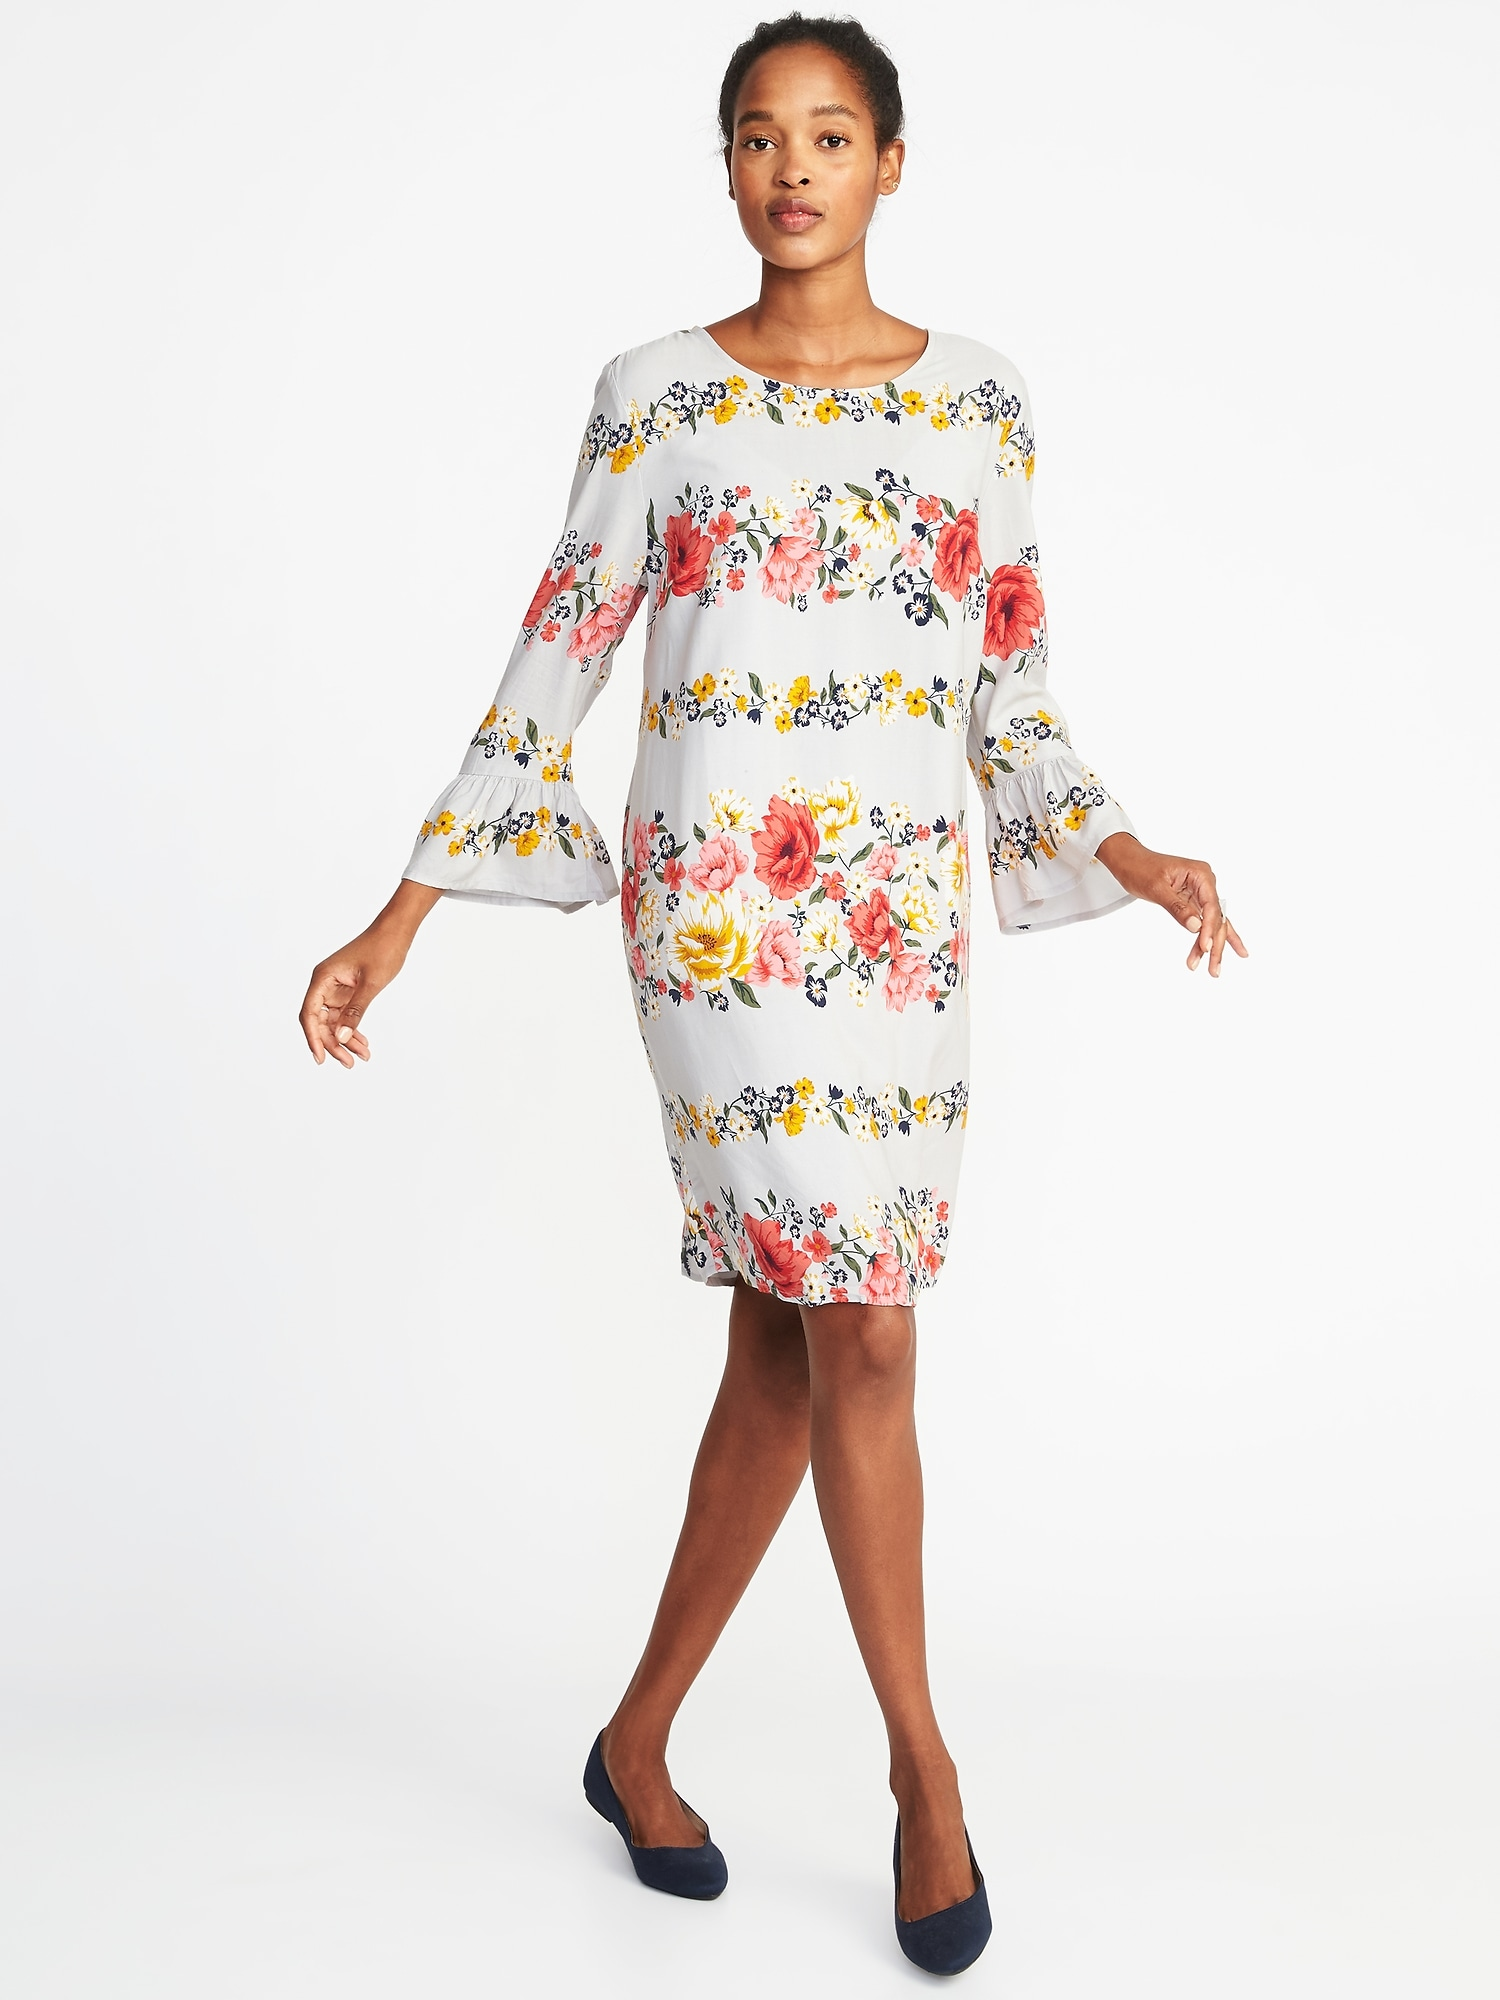 088a0aee1cb3 Floral-Print 3 4-Sleeve Shift Dress for Women